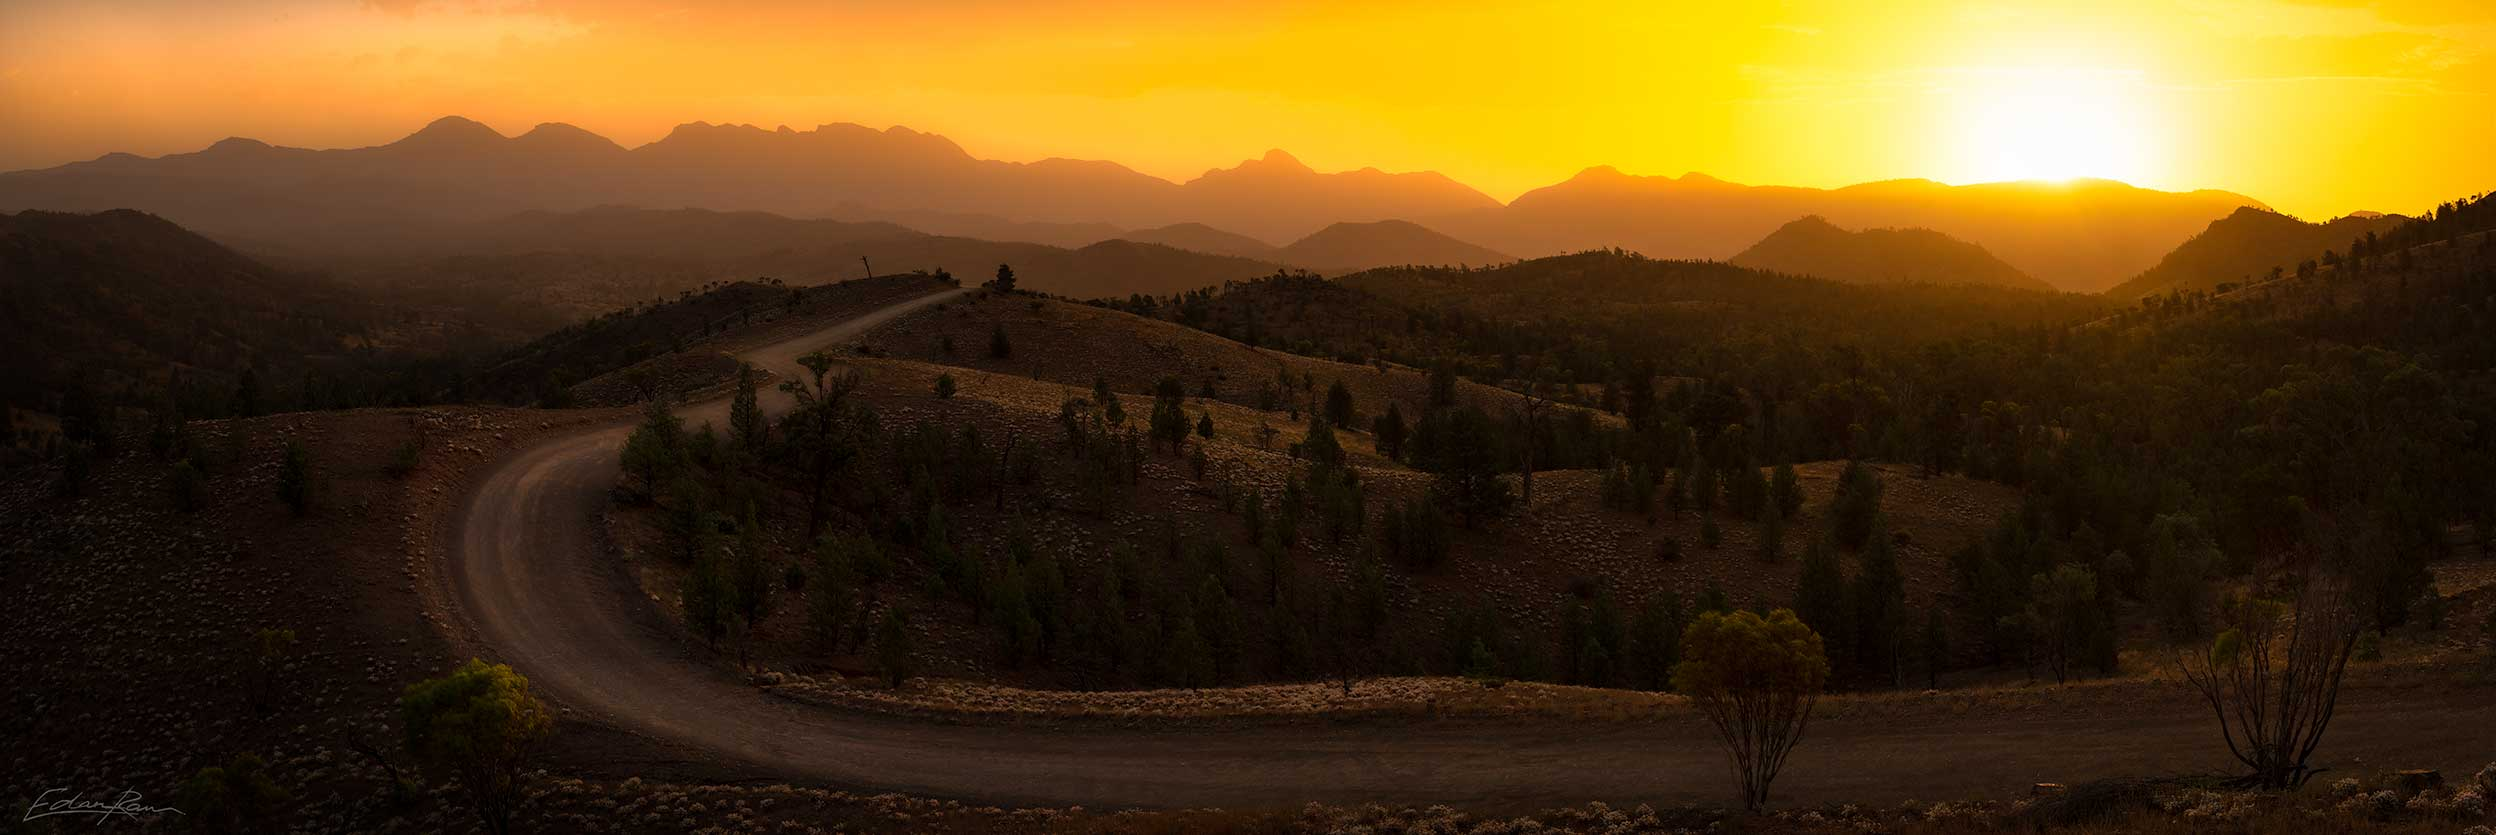 flinders ranges south austrlain landscape photography